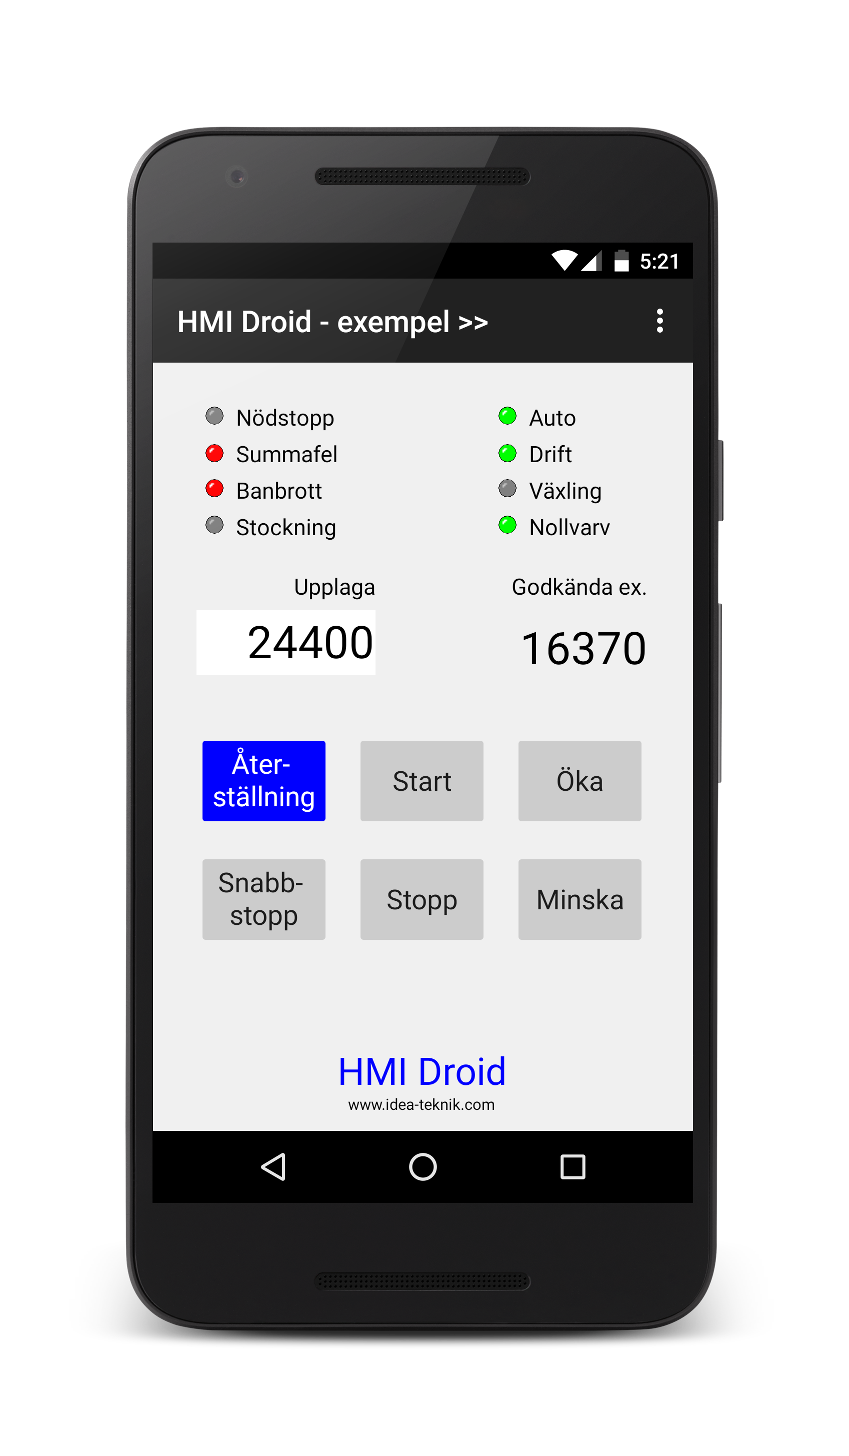 HMI Android Droid app phone tablet